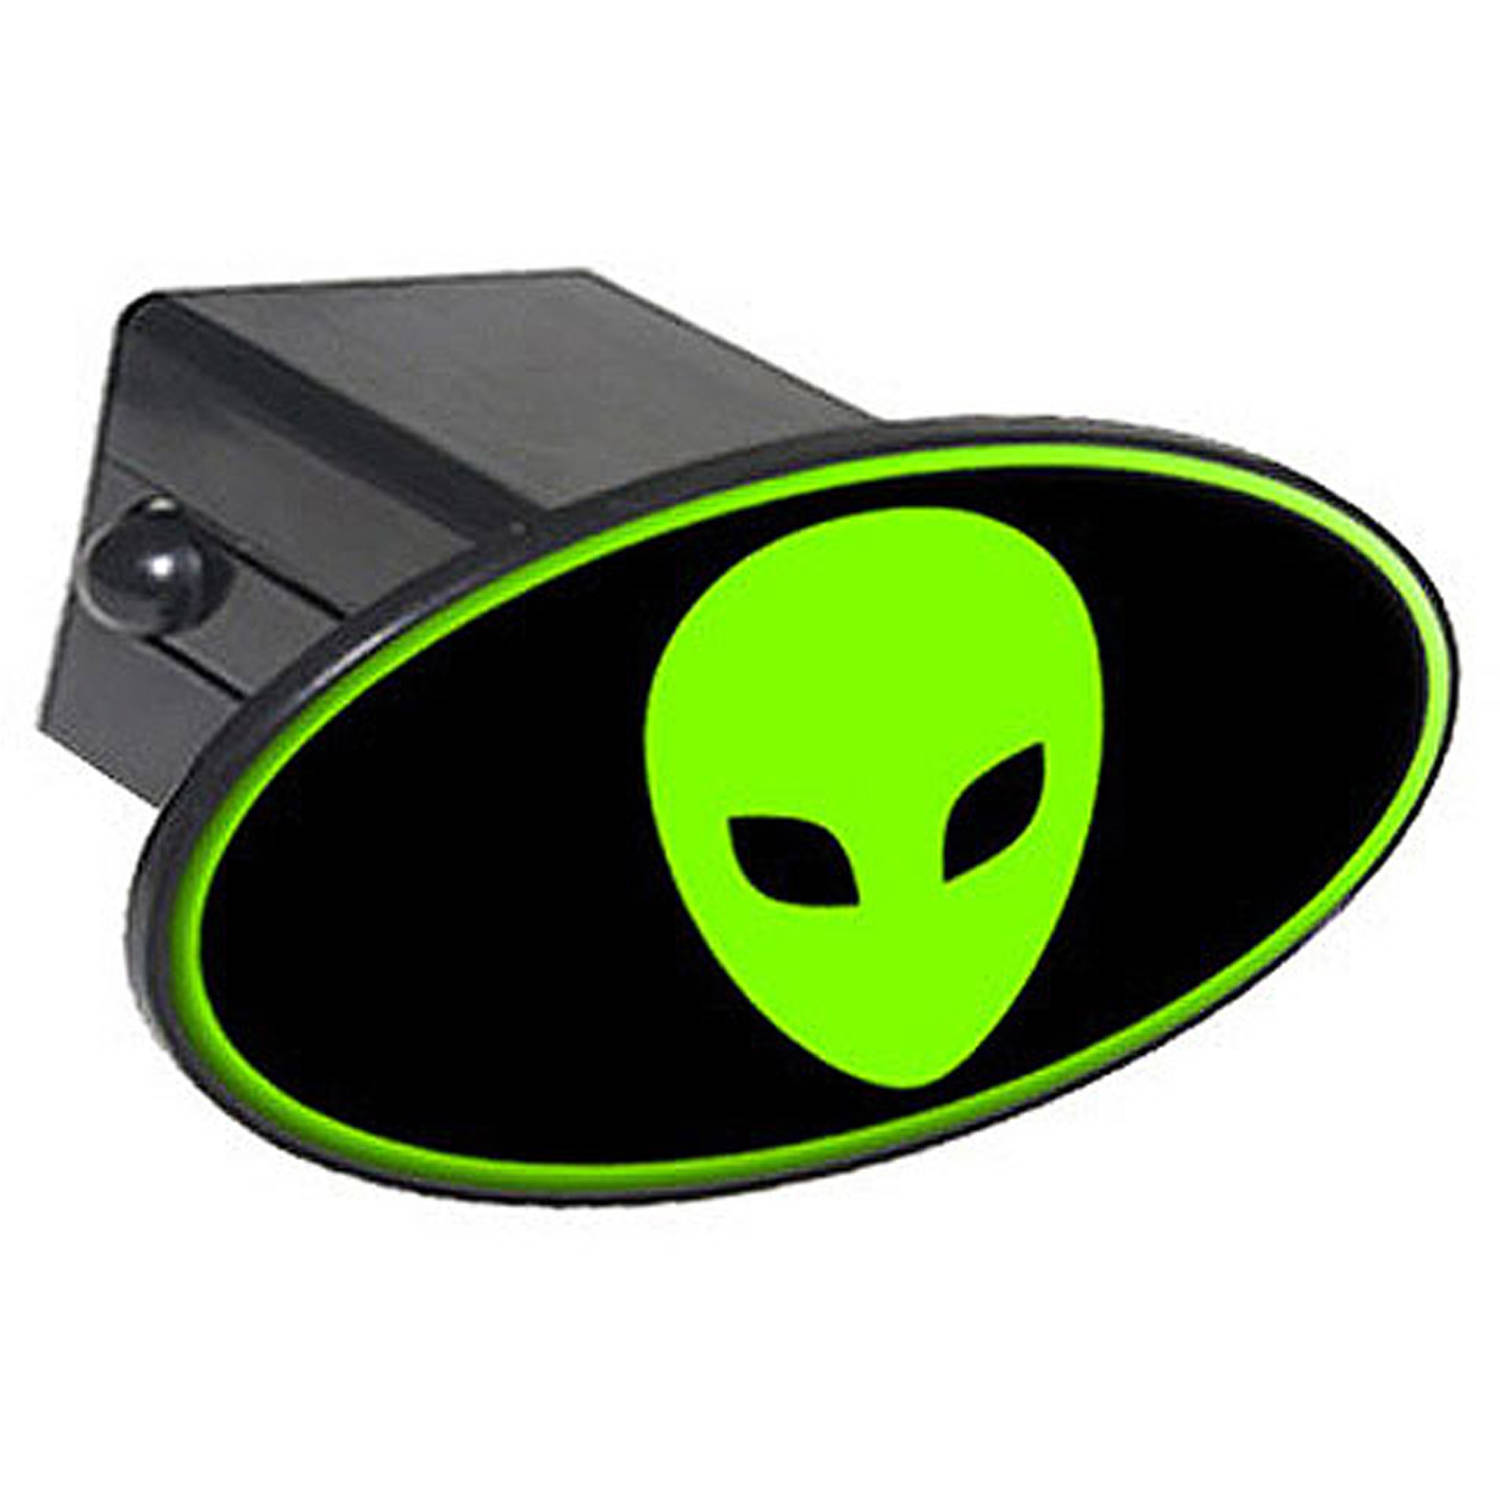 "Alien Head Green On Black 2"" Oval Tow Trailer Hitch Cover Plug Insert"